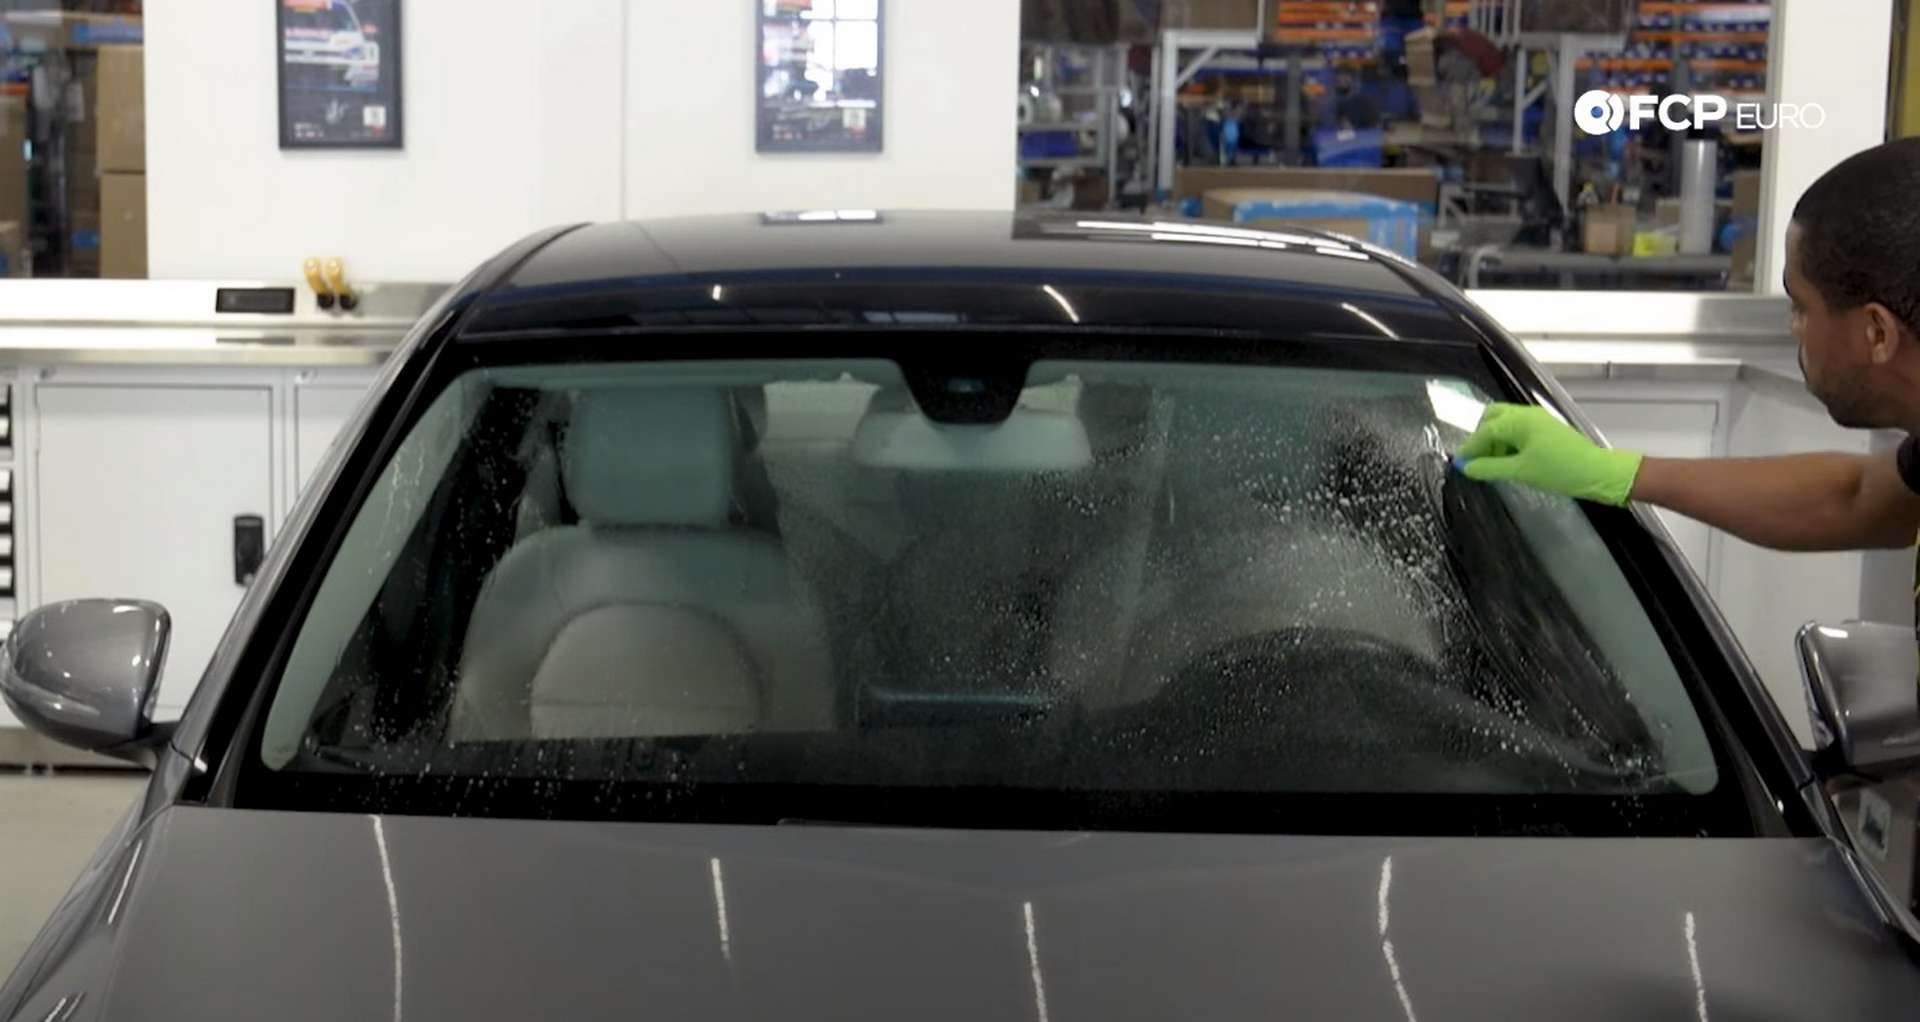 DIY Mercedes-Benz W205 Wiper Blade Replacement claying the glass